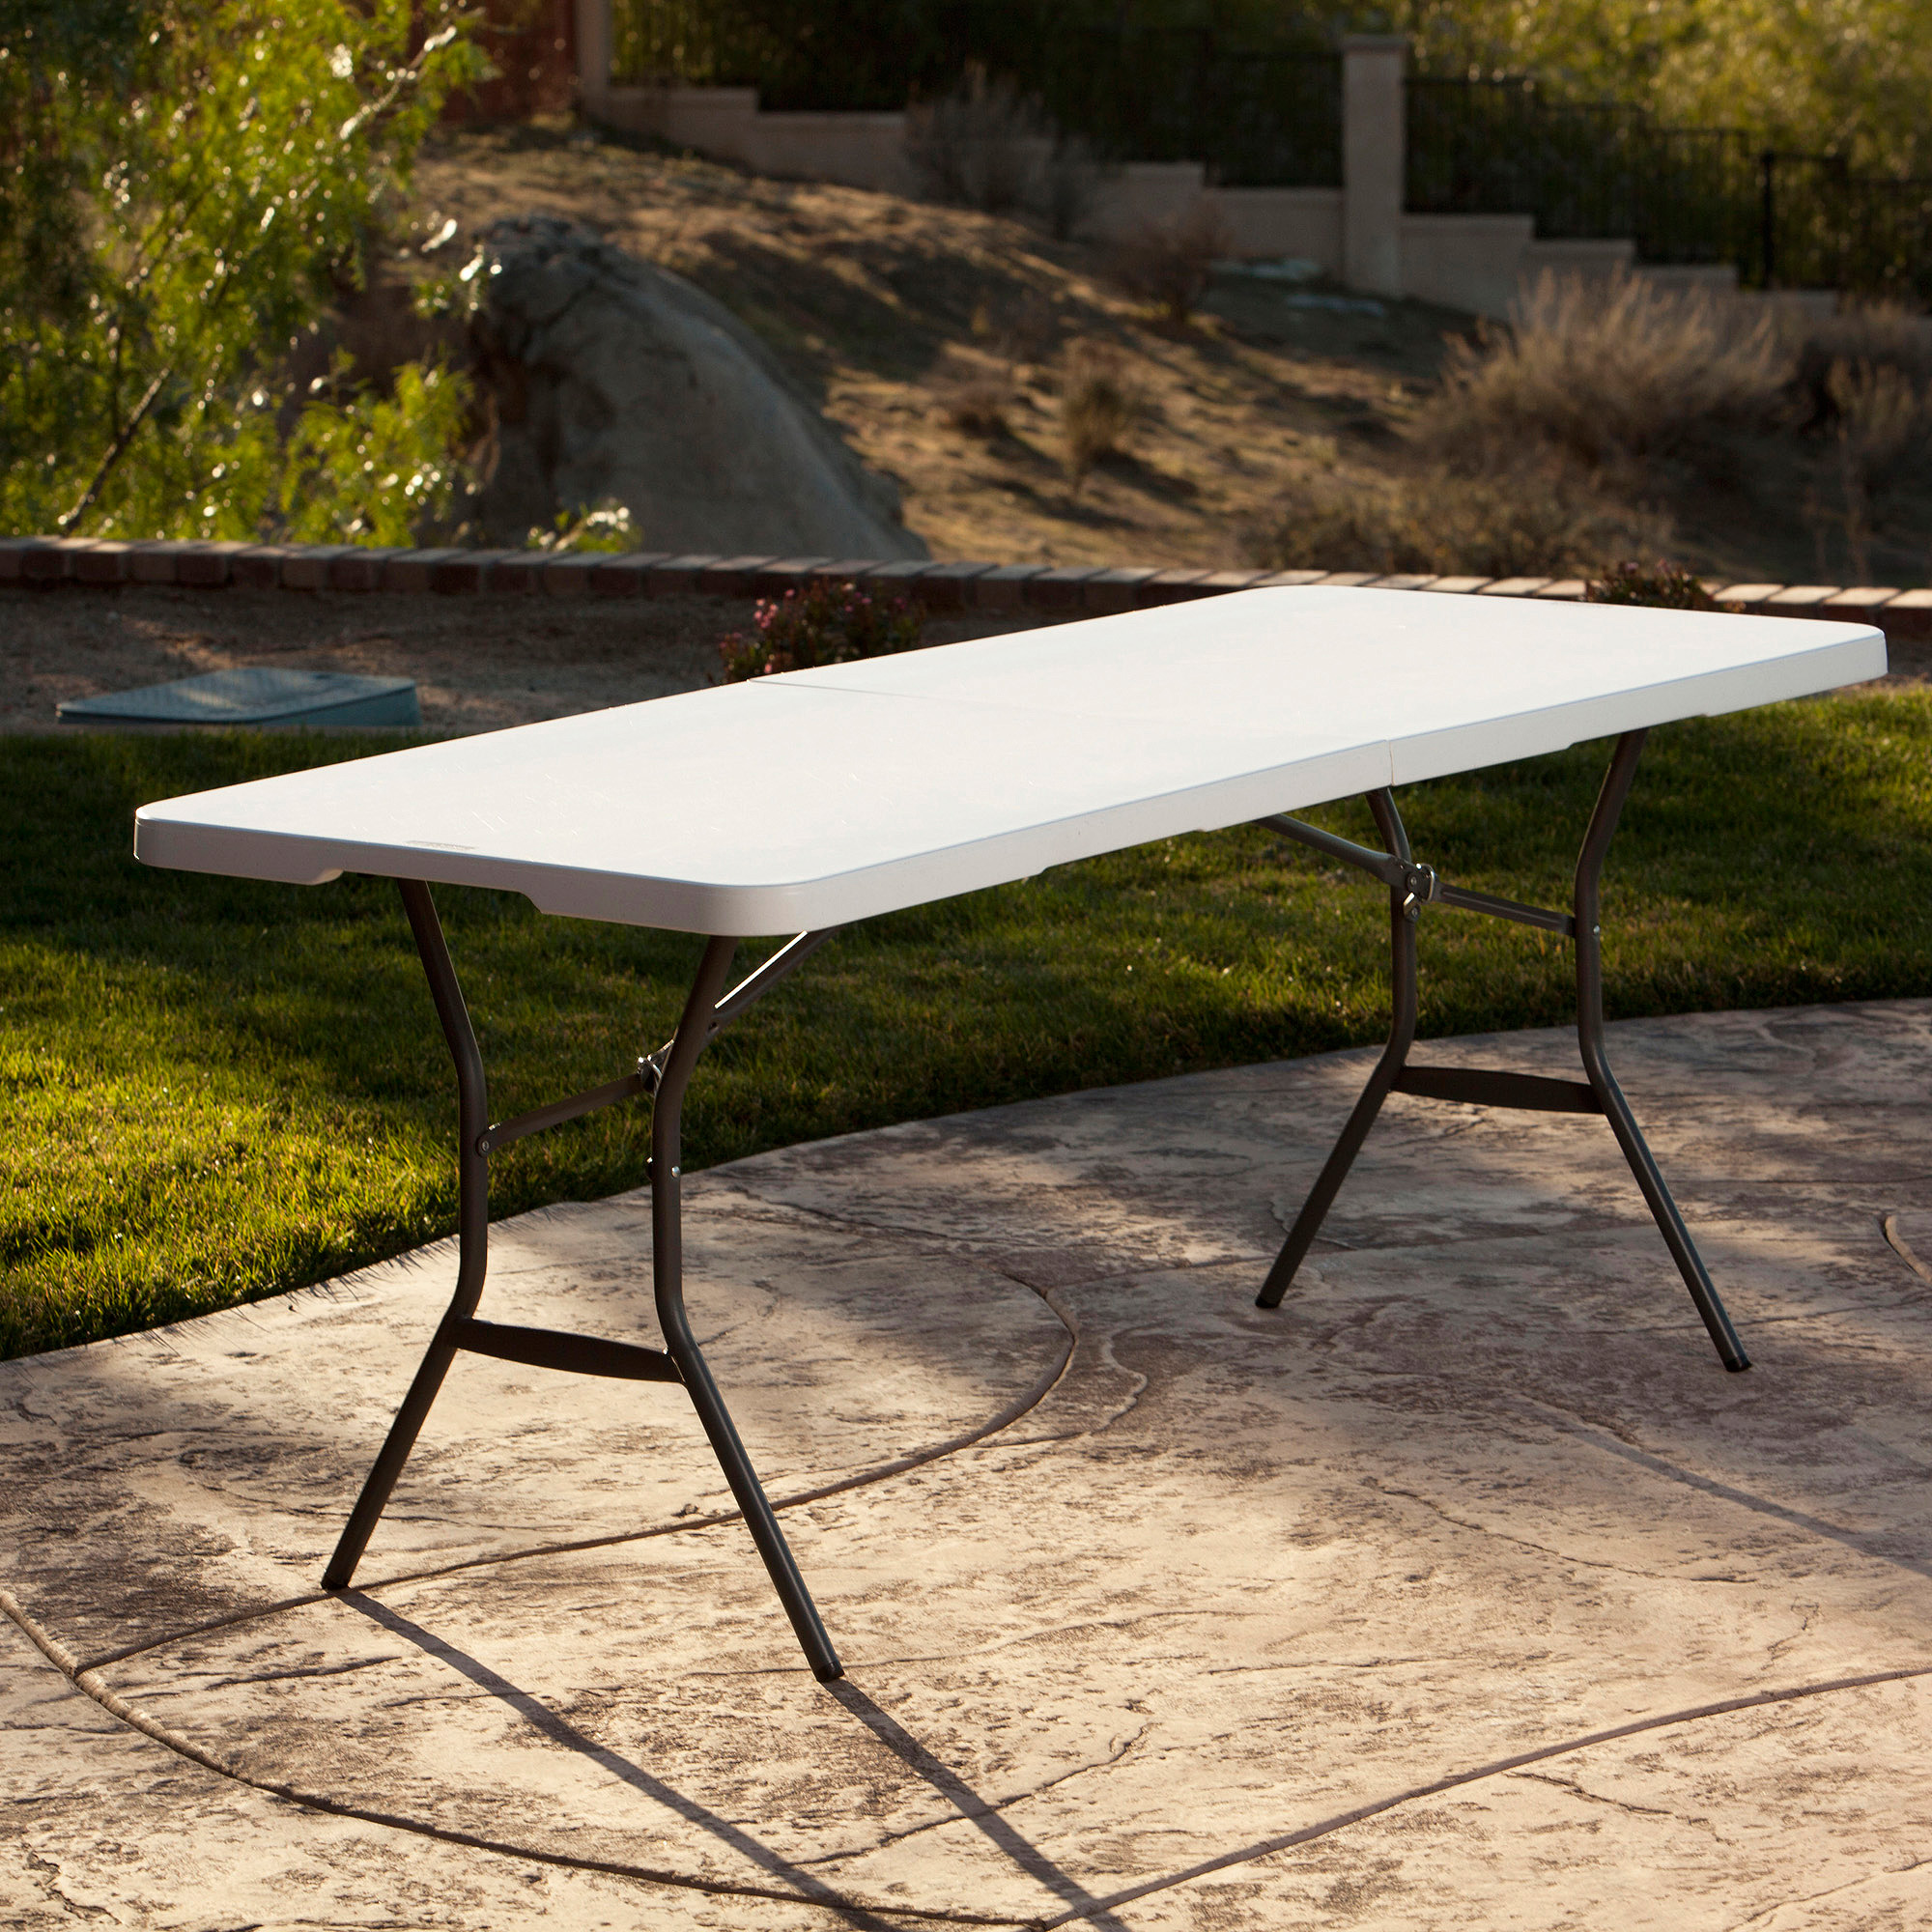 Lifetime 6u0027 Fold In Half Table, White Granite   Walmart.com